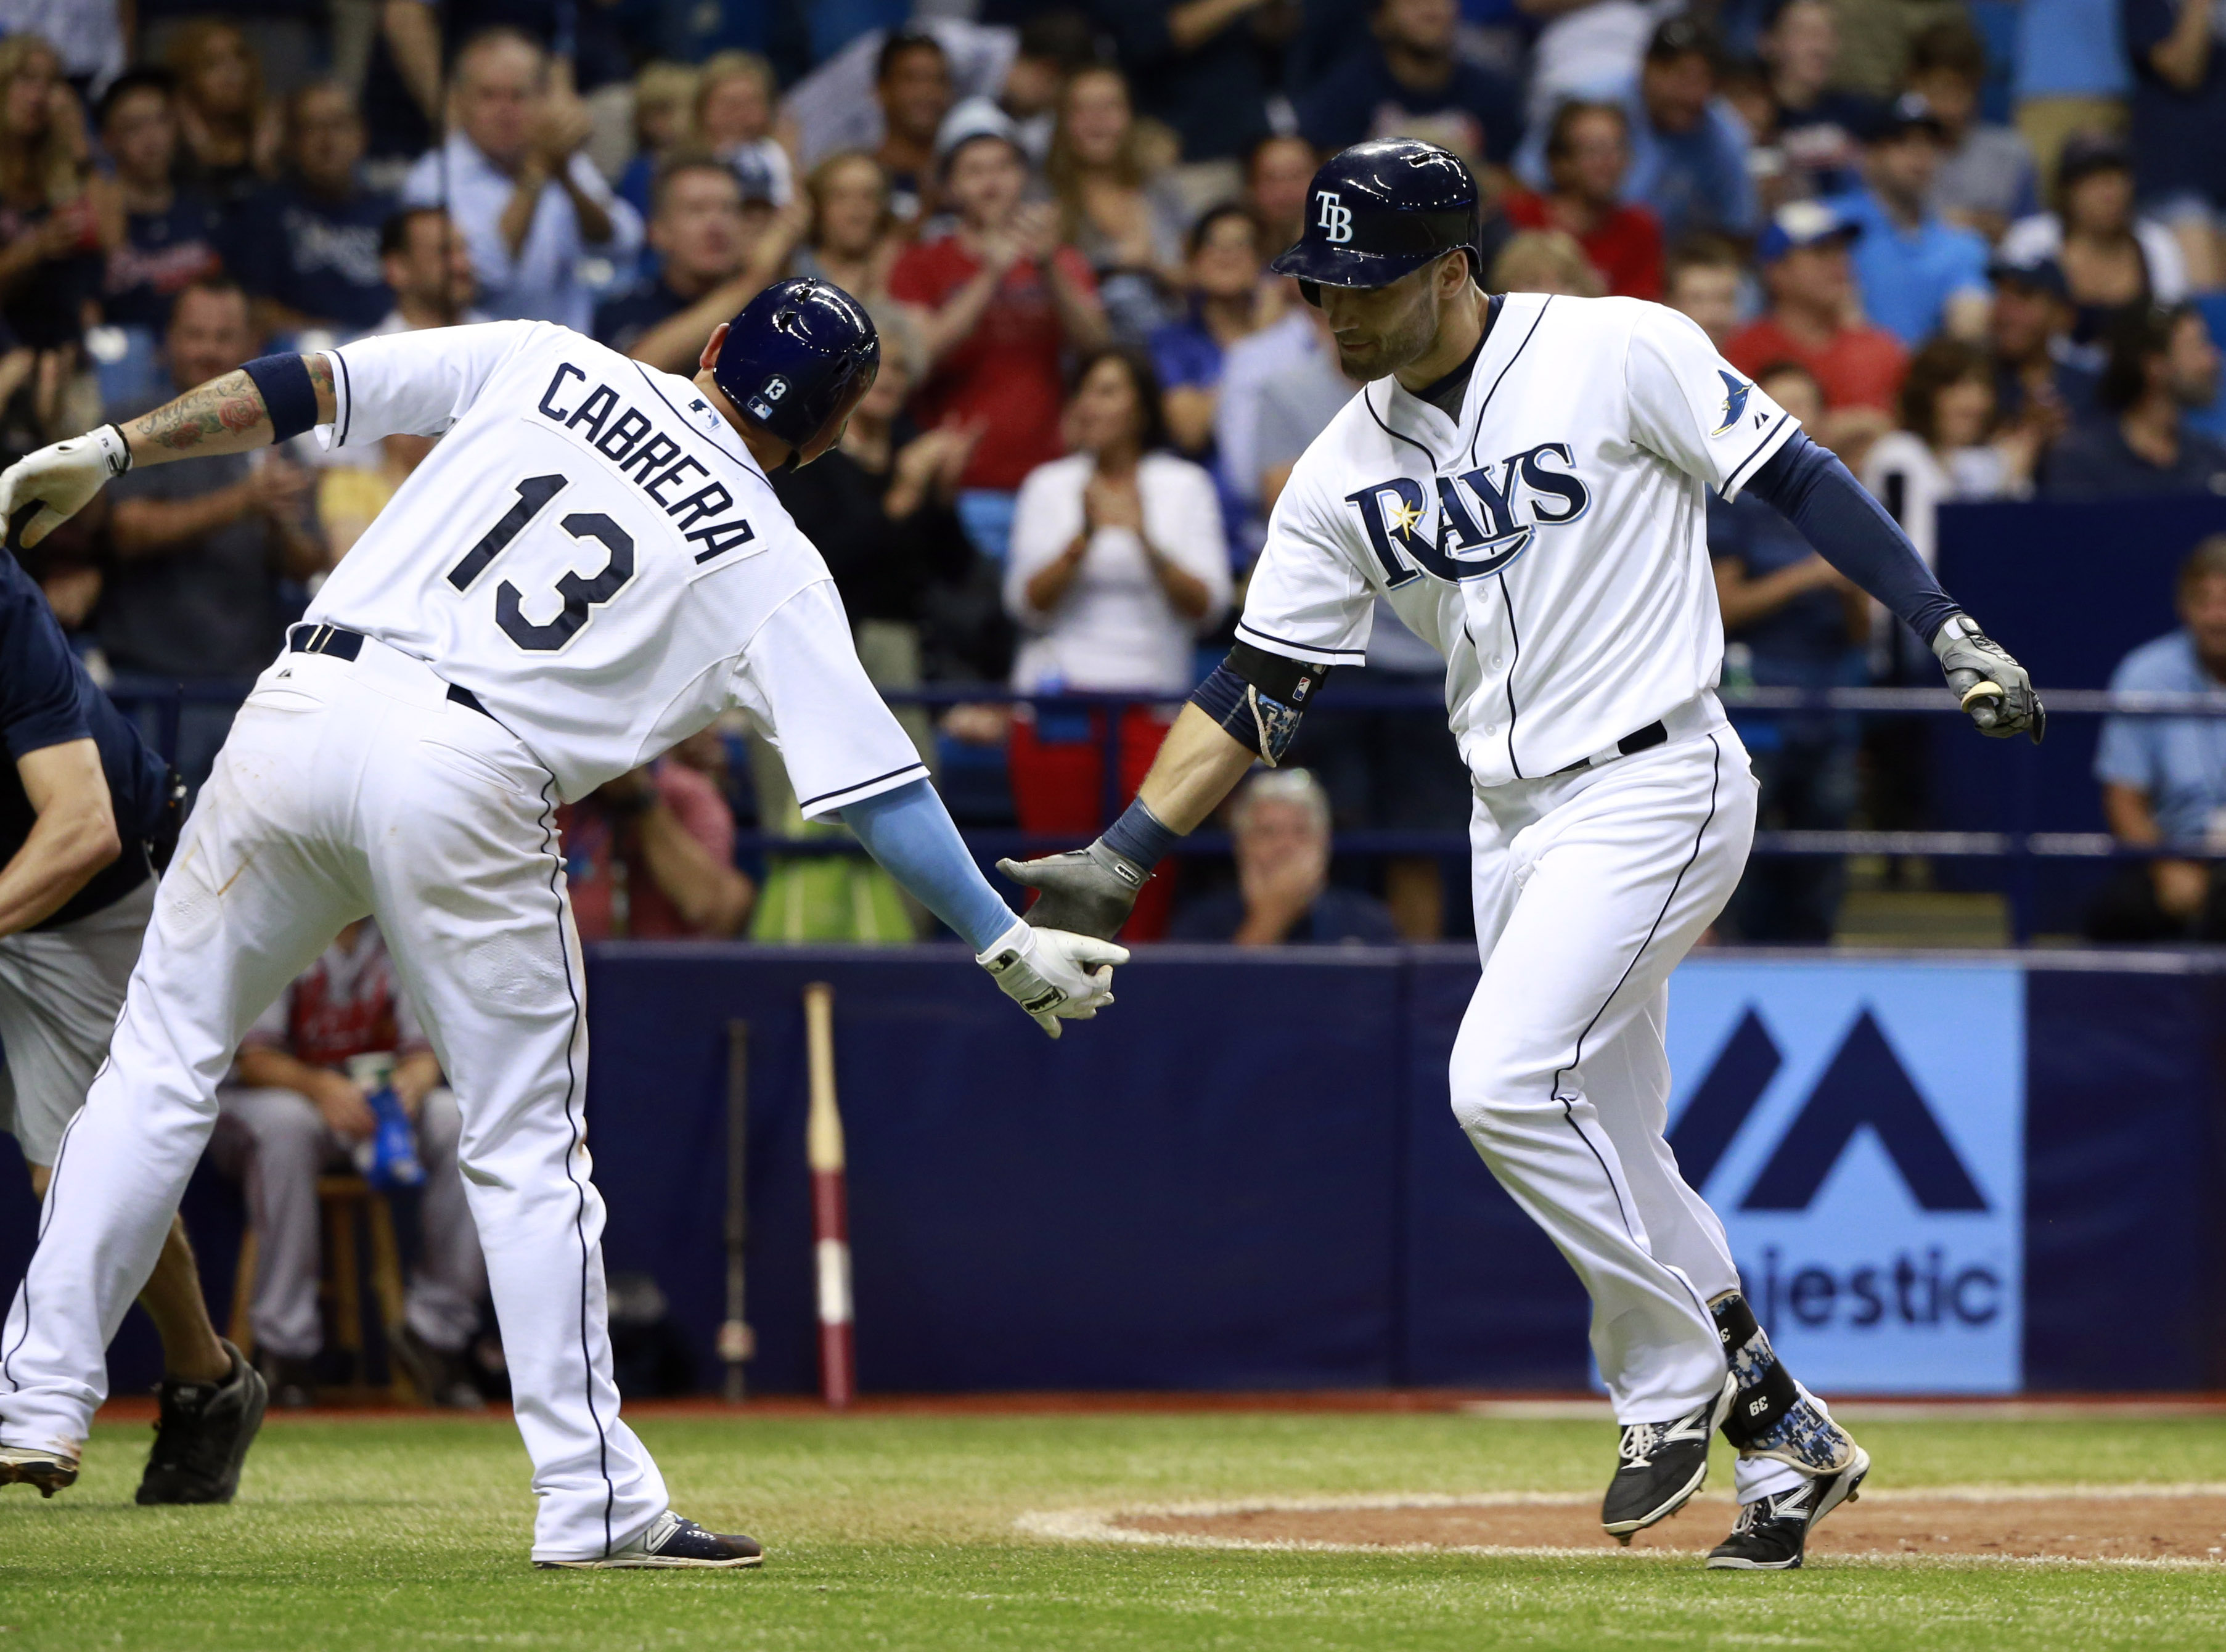 Tampa Bay Rays center fielder Kevin Kiermaier (39) is congratulated by shortstop Asdrubal Cabrera (13) after Kiermaier hit a 2-run home run during the seventh inning against the Atlanta Braves at Tropicana Field. (photo Kim Klement / USA TODAY Sports)